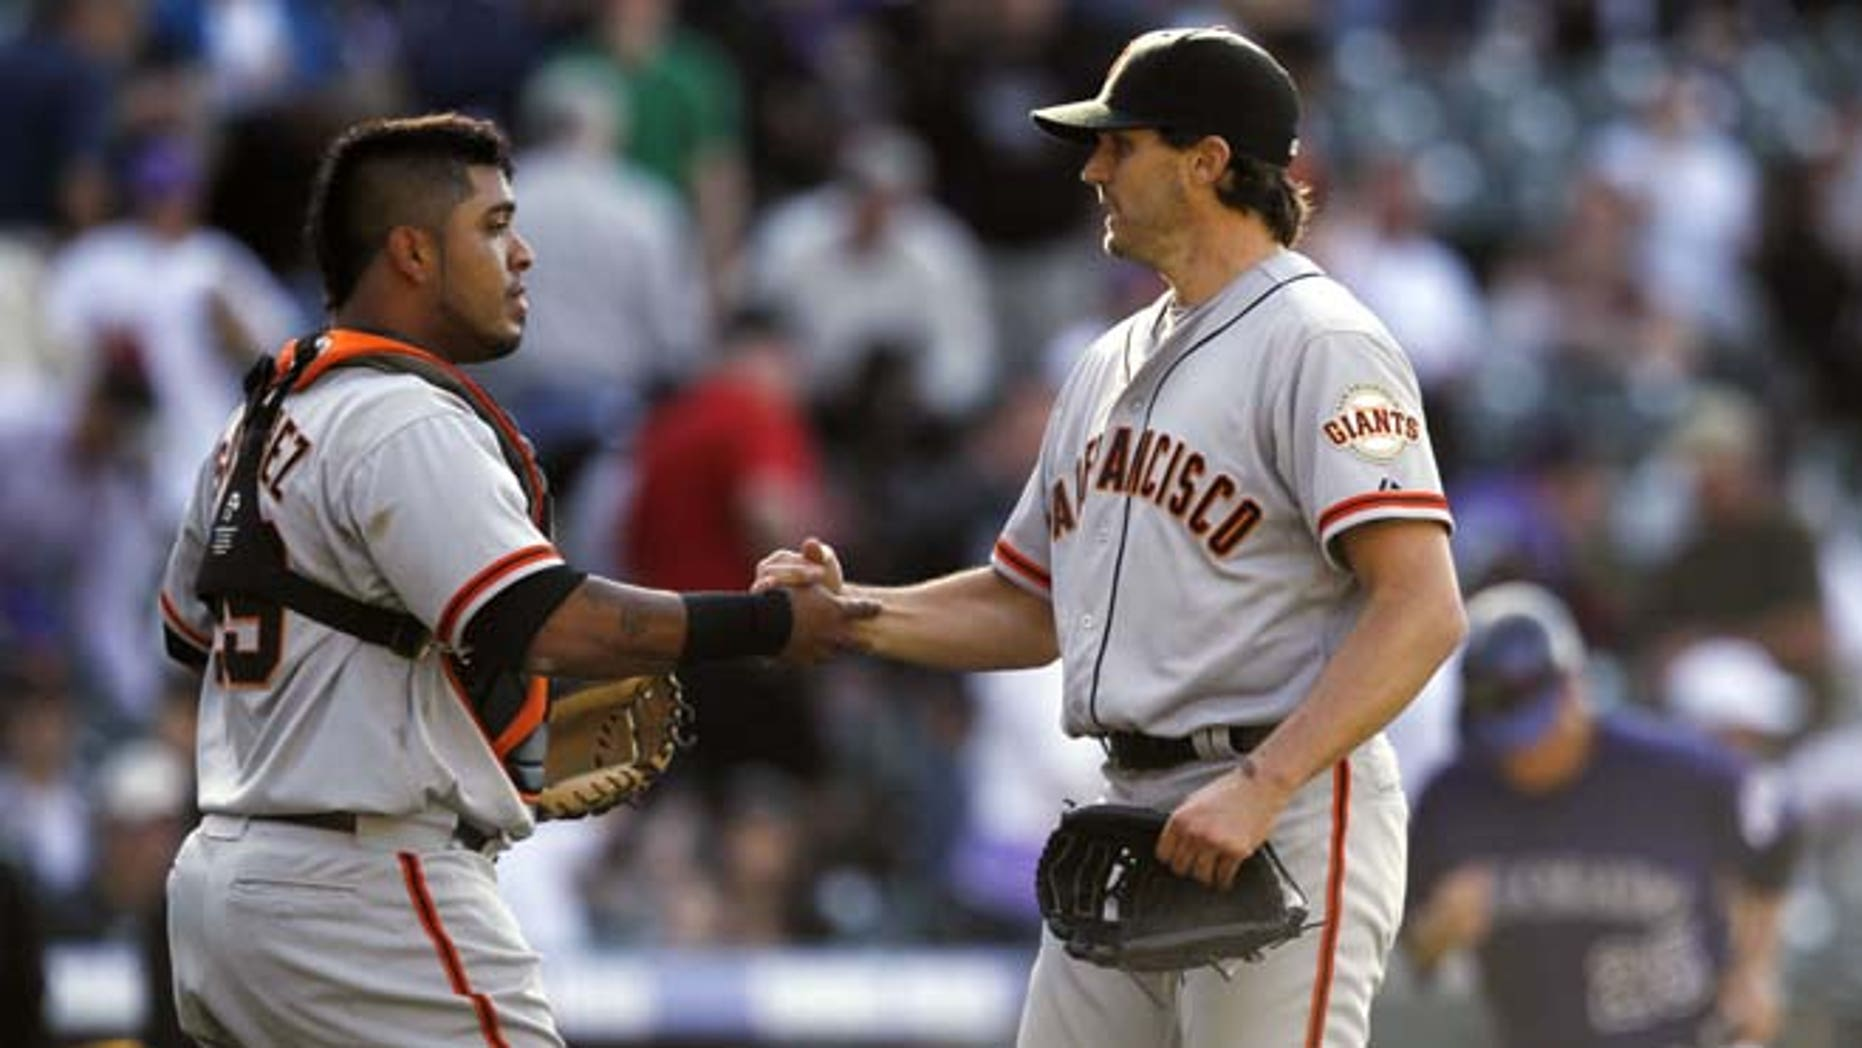 San Francisco Giants catcher Hector Sanchez, left, congratulates starting pitcher Barry Zito after he notched the final out in the ninth inning for a shut out in the Giants' 7-0 victory over the Colorado Rockies in a baseball game in Denver on Monday, April 9, 2012.